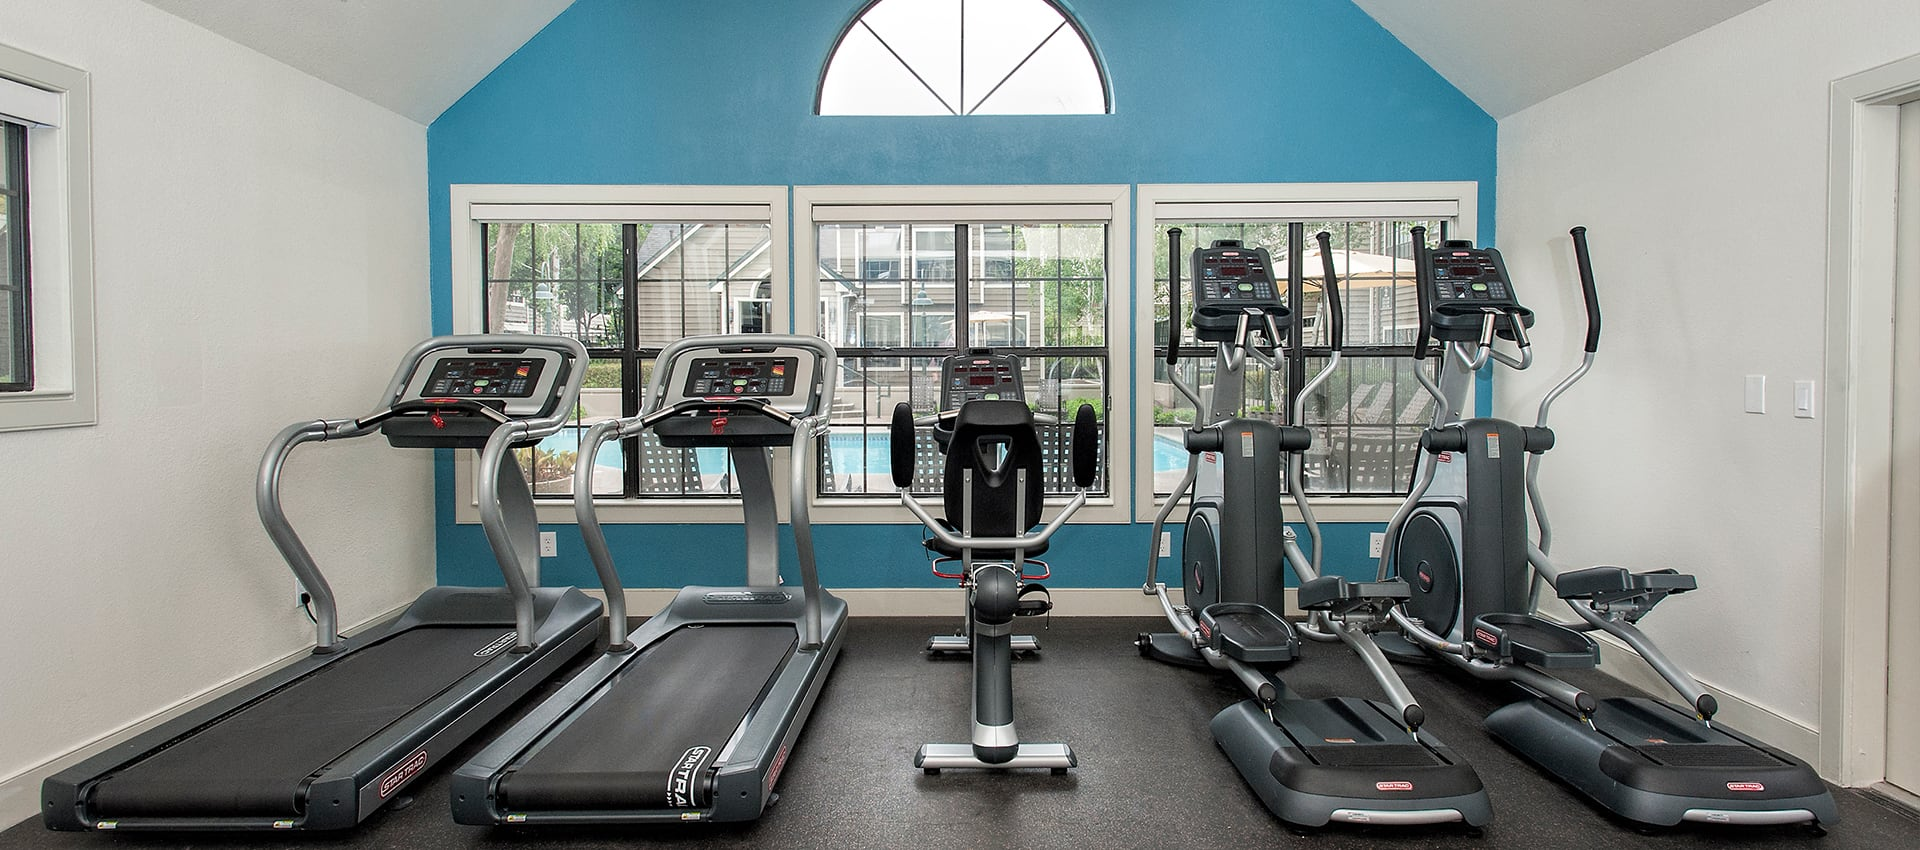 Fitness Center at Reserve at Capital Center Apartment Homes in Rancho Cordova, CA